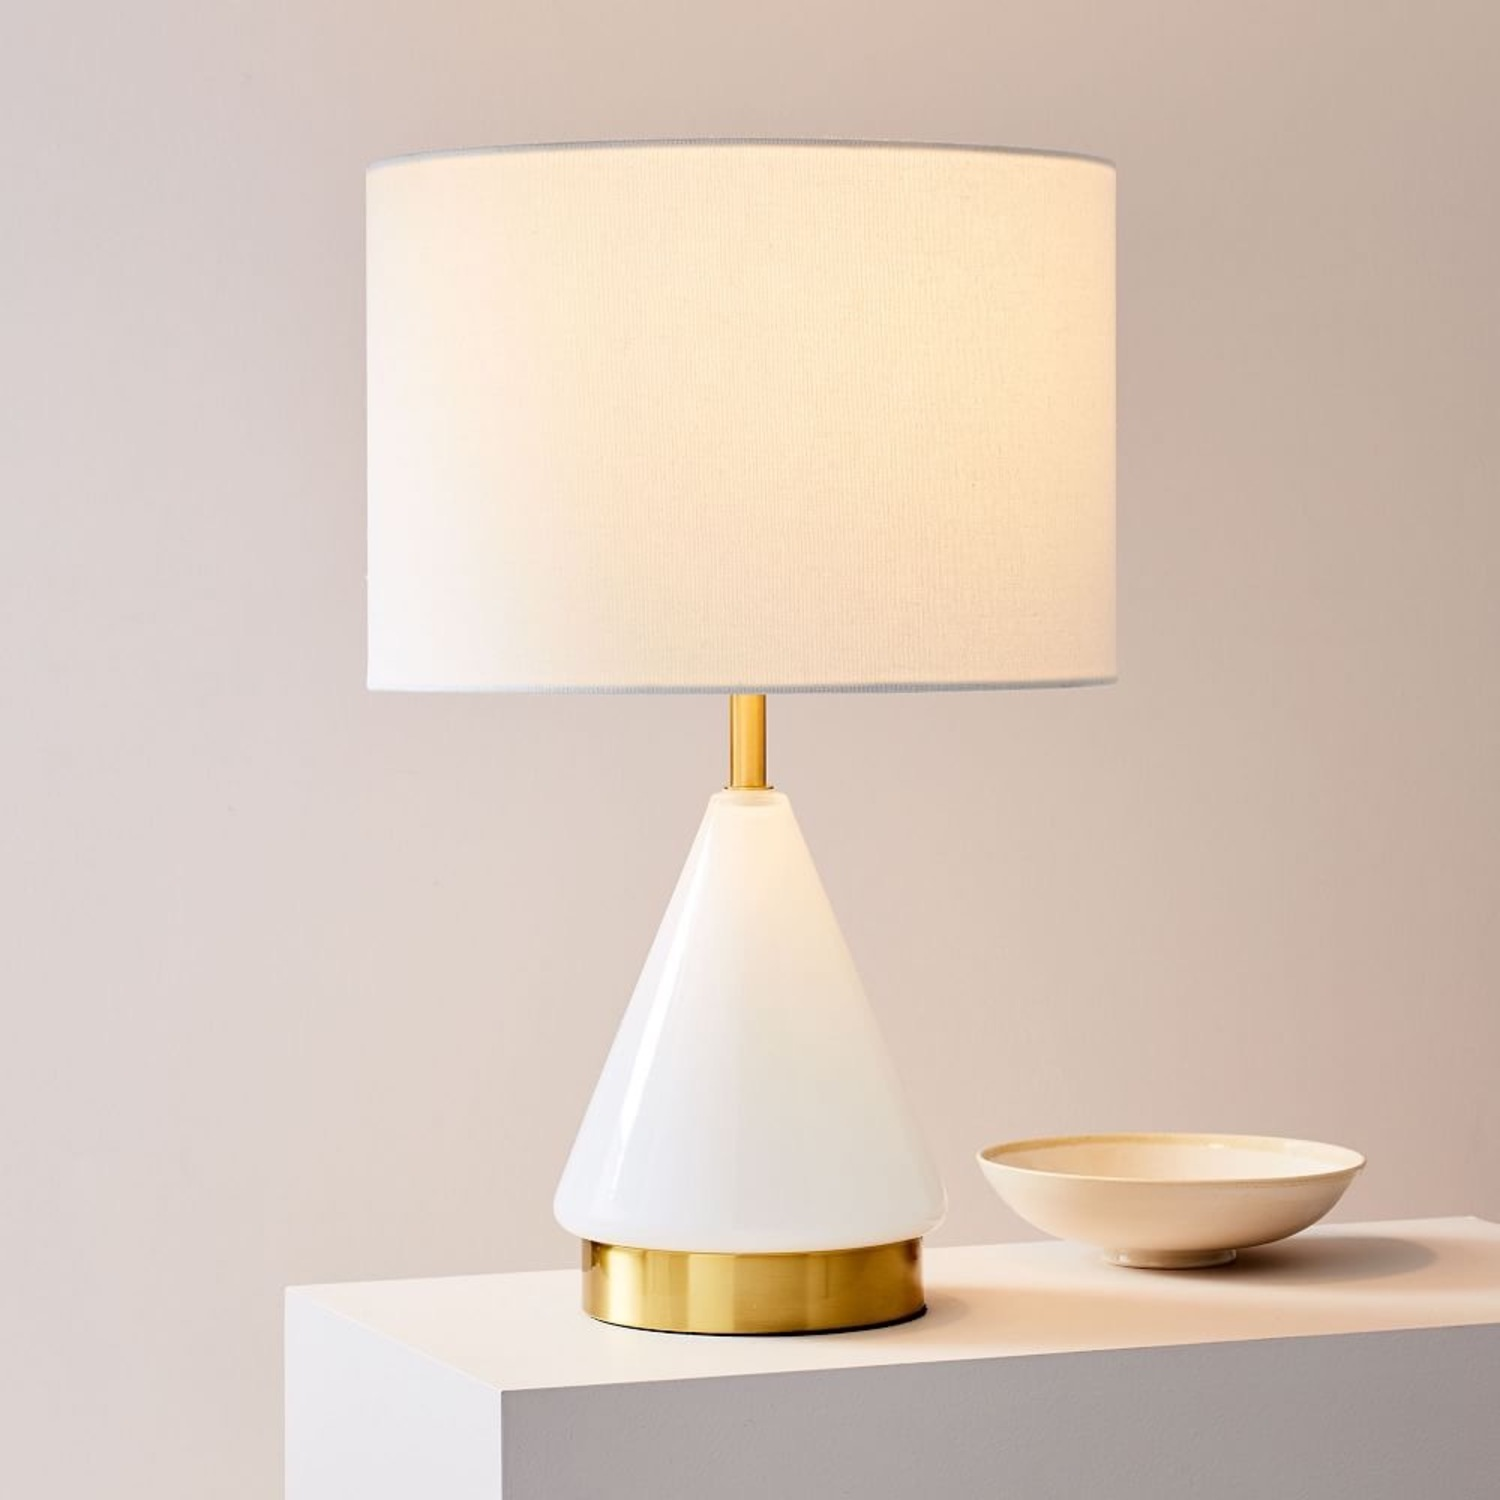 West Elm Metalized White Table Lamp - image-1